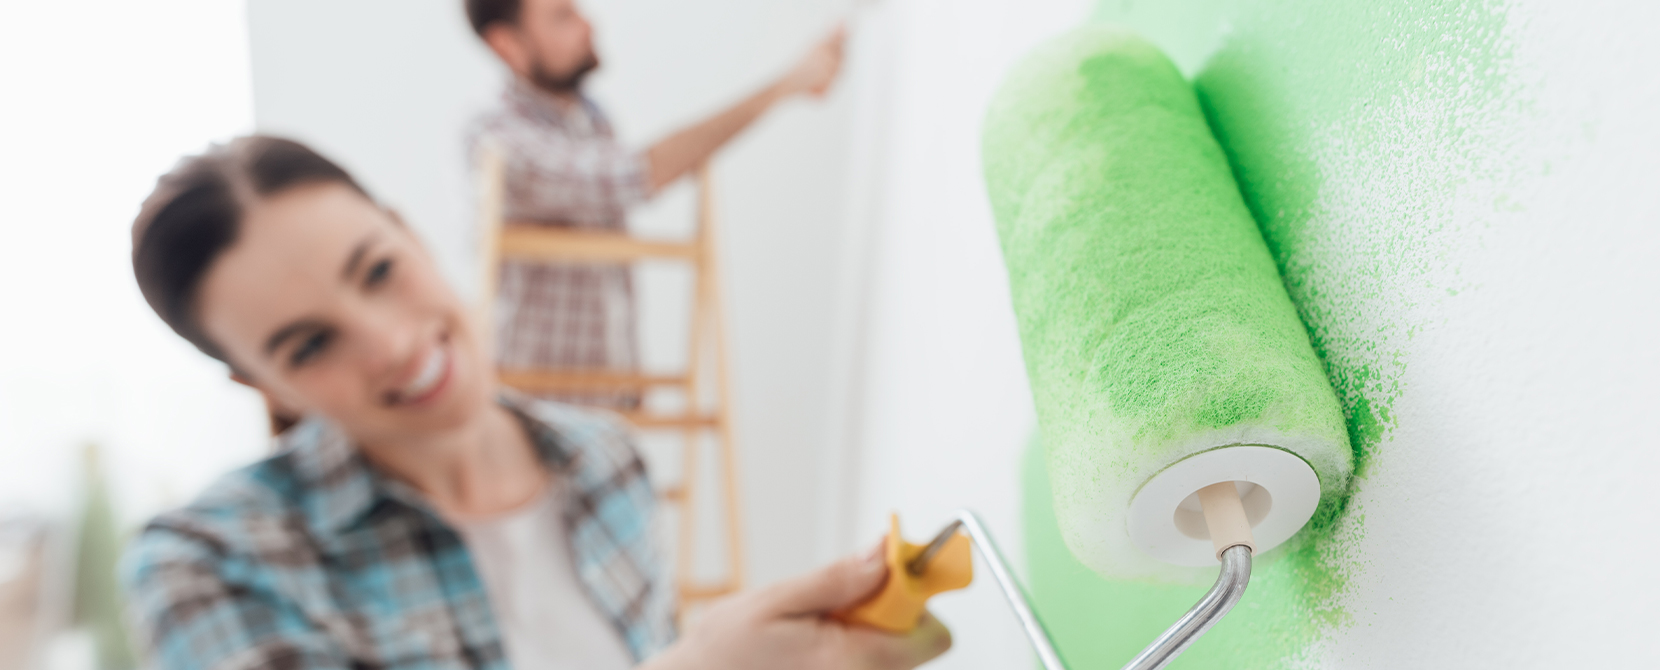 A paint which hardly spatters during painting using a paint roller